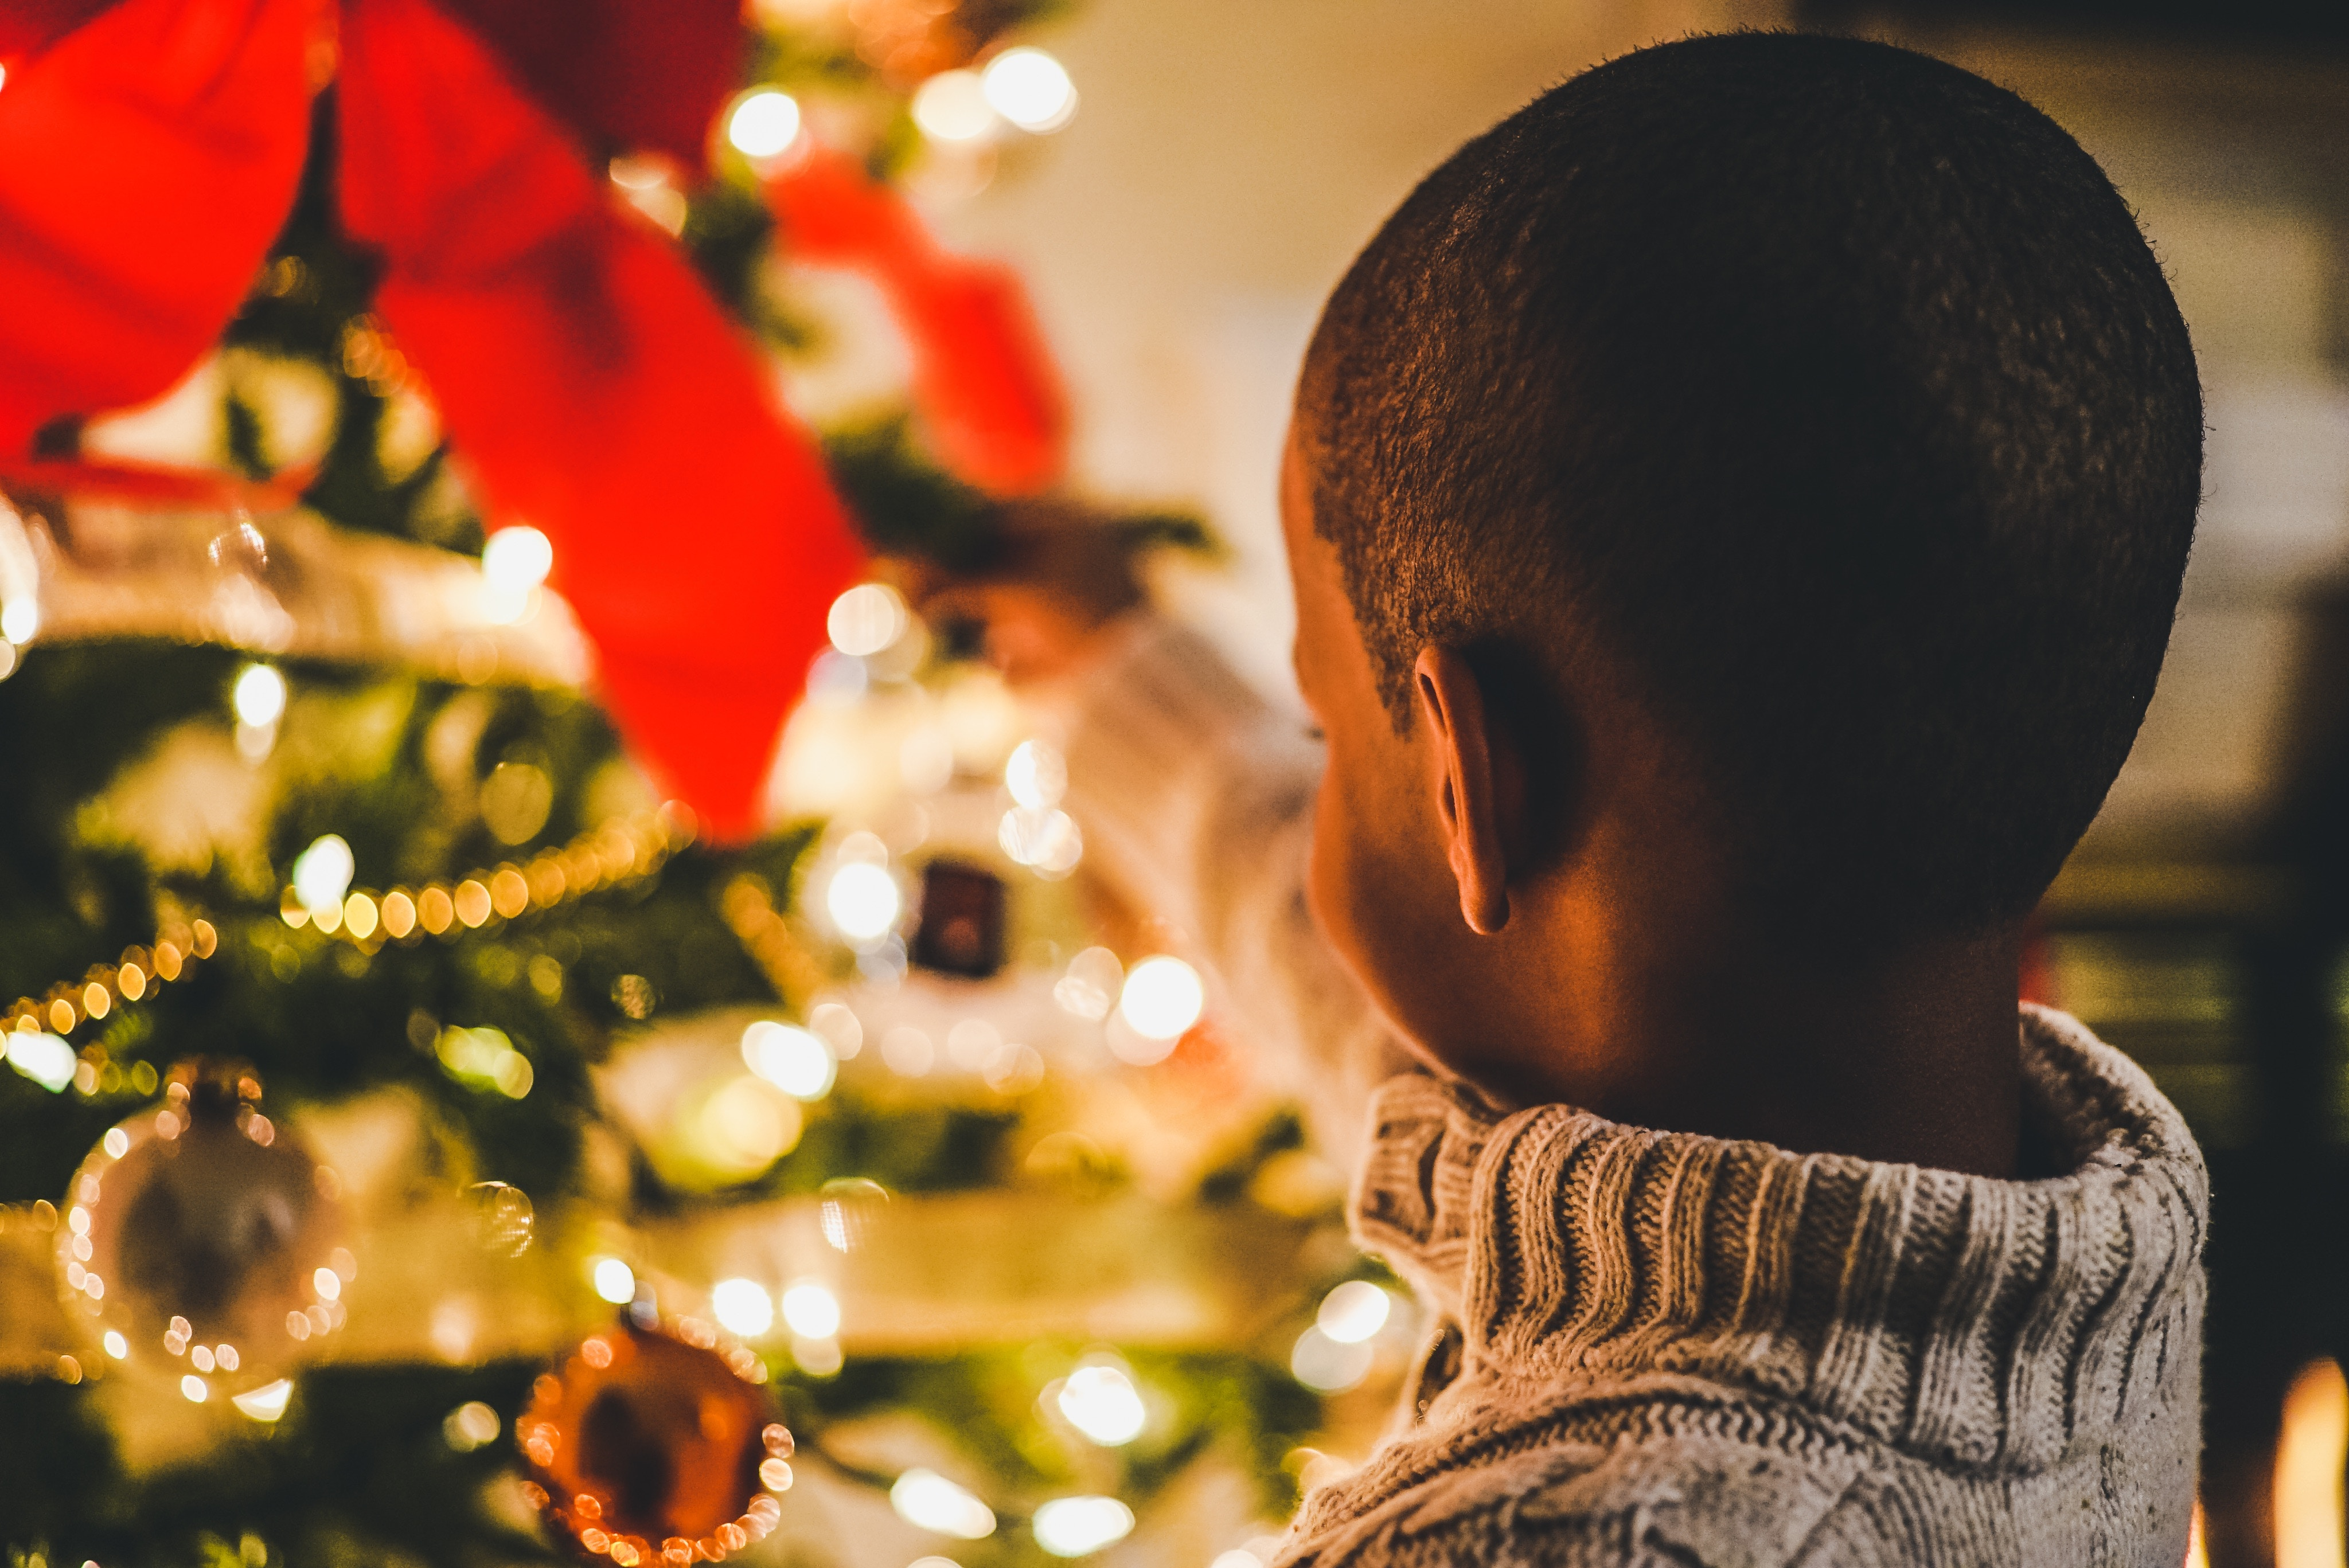 Keeping children grounded during the Christmas consumerism